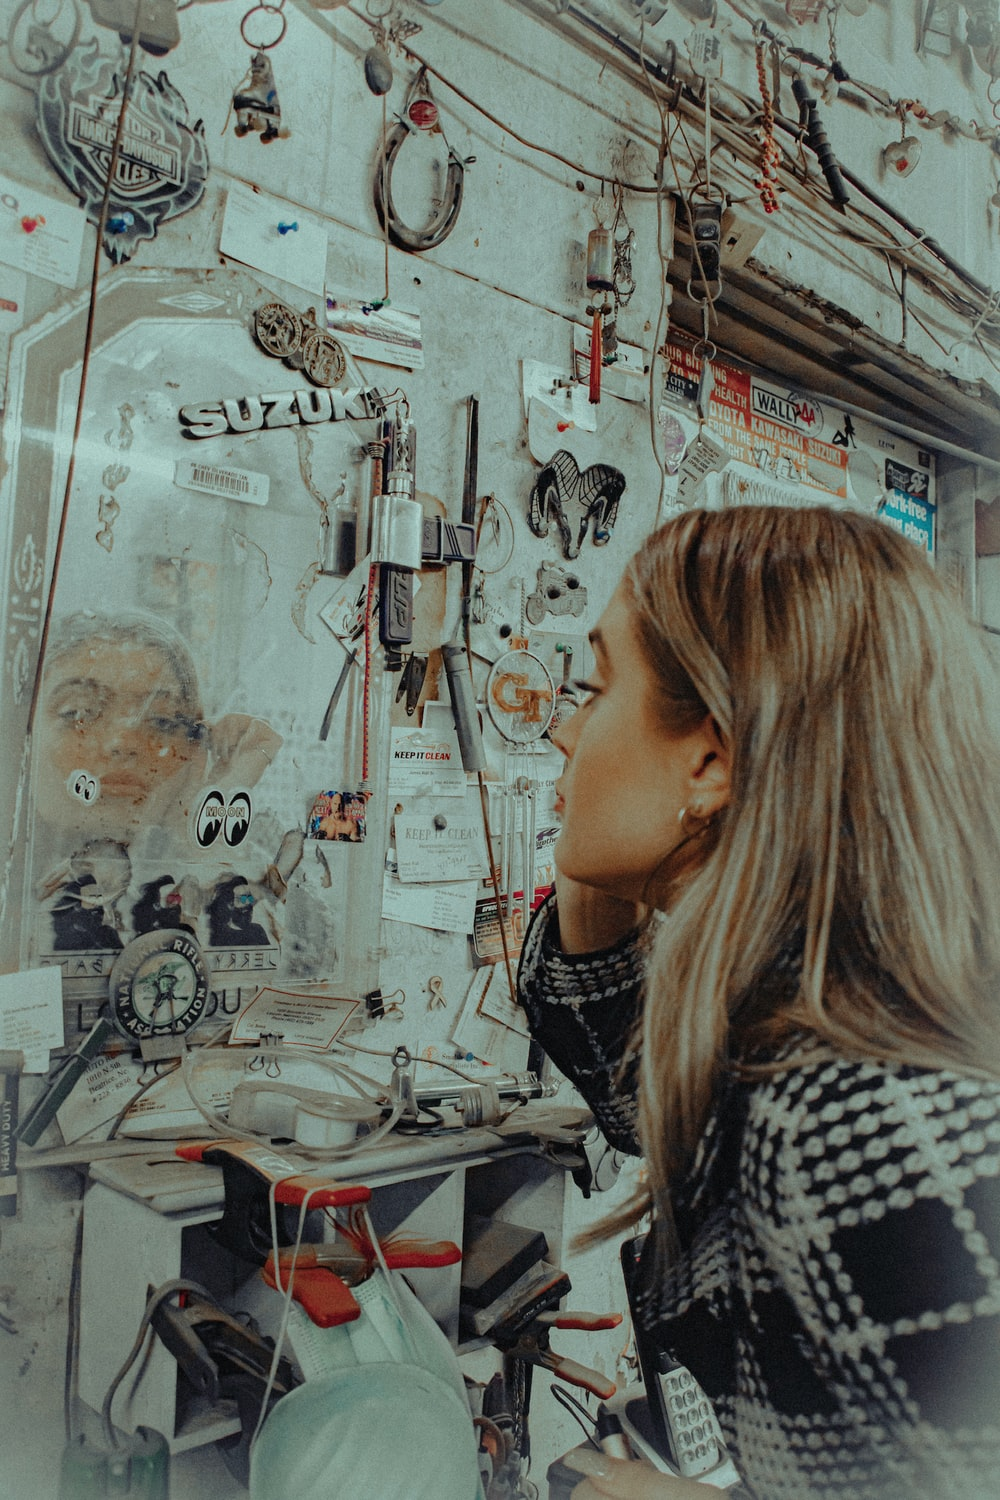 woman in black and white shirt standing near wall with graffiti